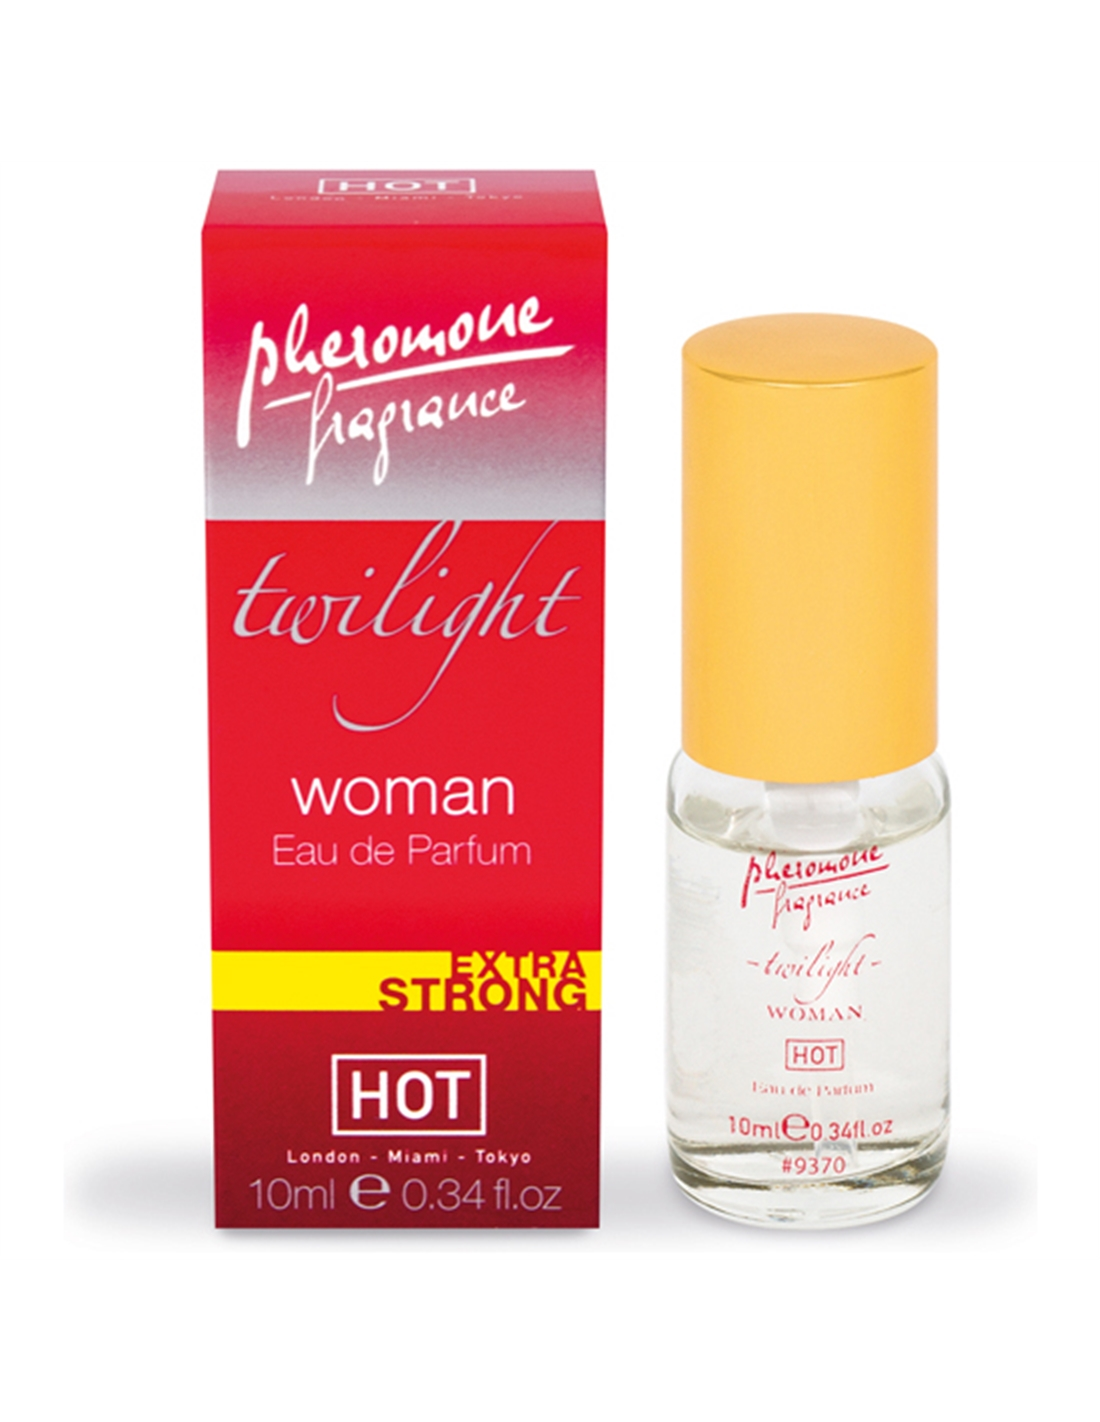 Perfume Com Feromonas Twilight Woman Extra Forte - 10ml - PR2010300096